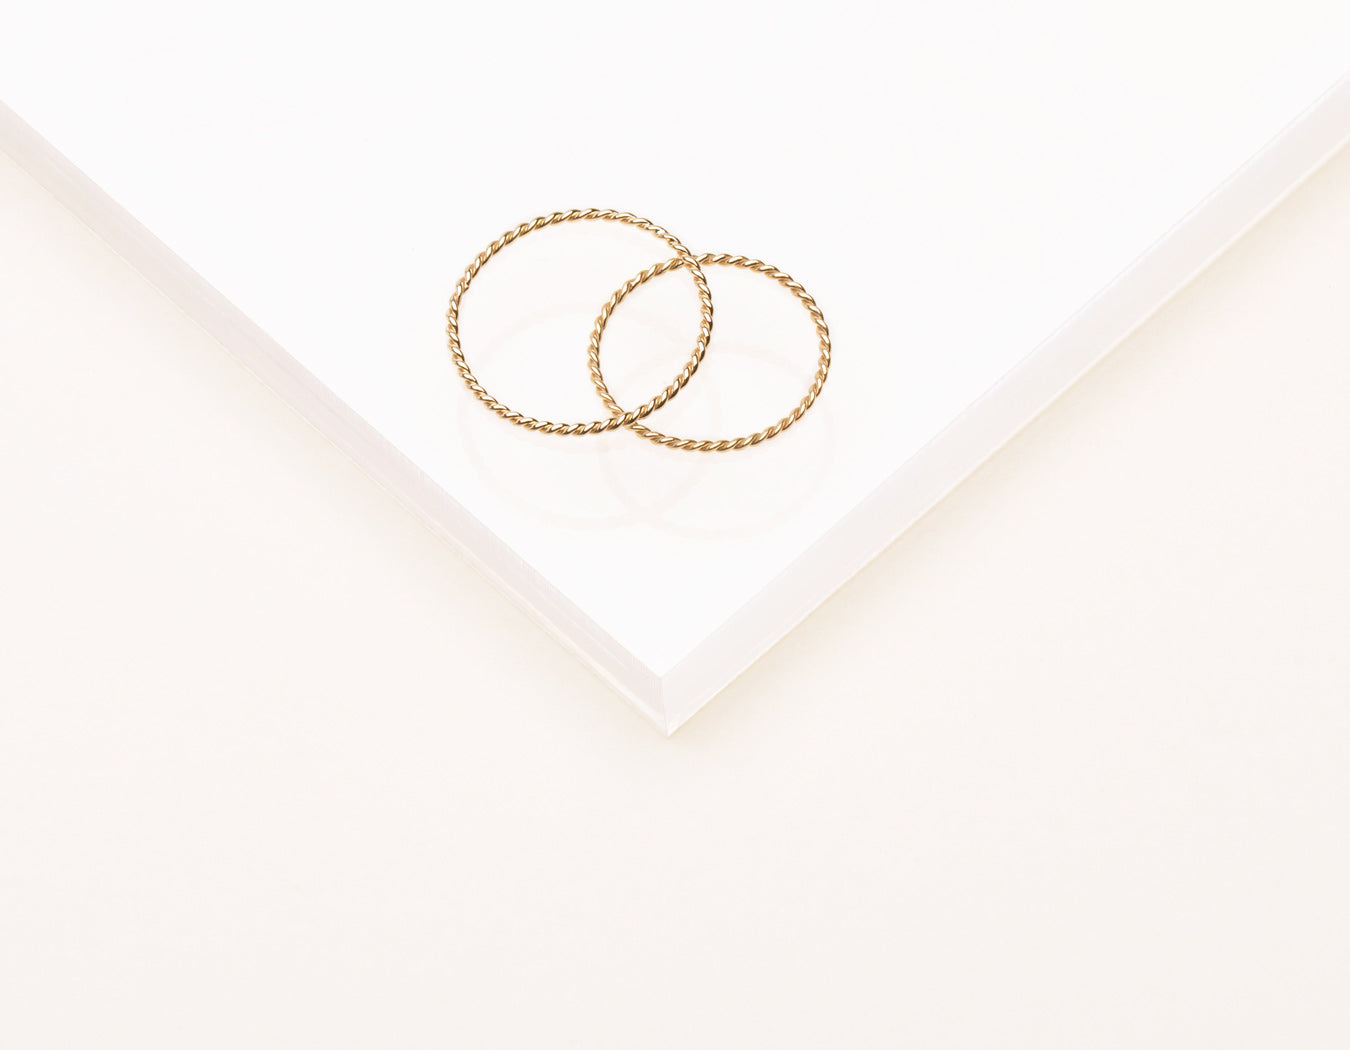 delicate elegant braided Twist Ring stacking 14k solid gold Vrai & Oro minimalist jewelry, 14K Yellow Gold